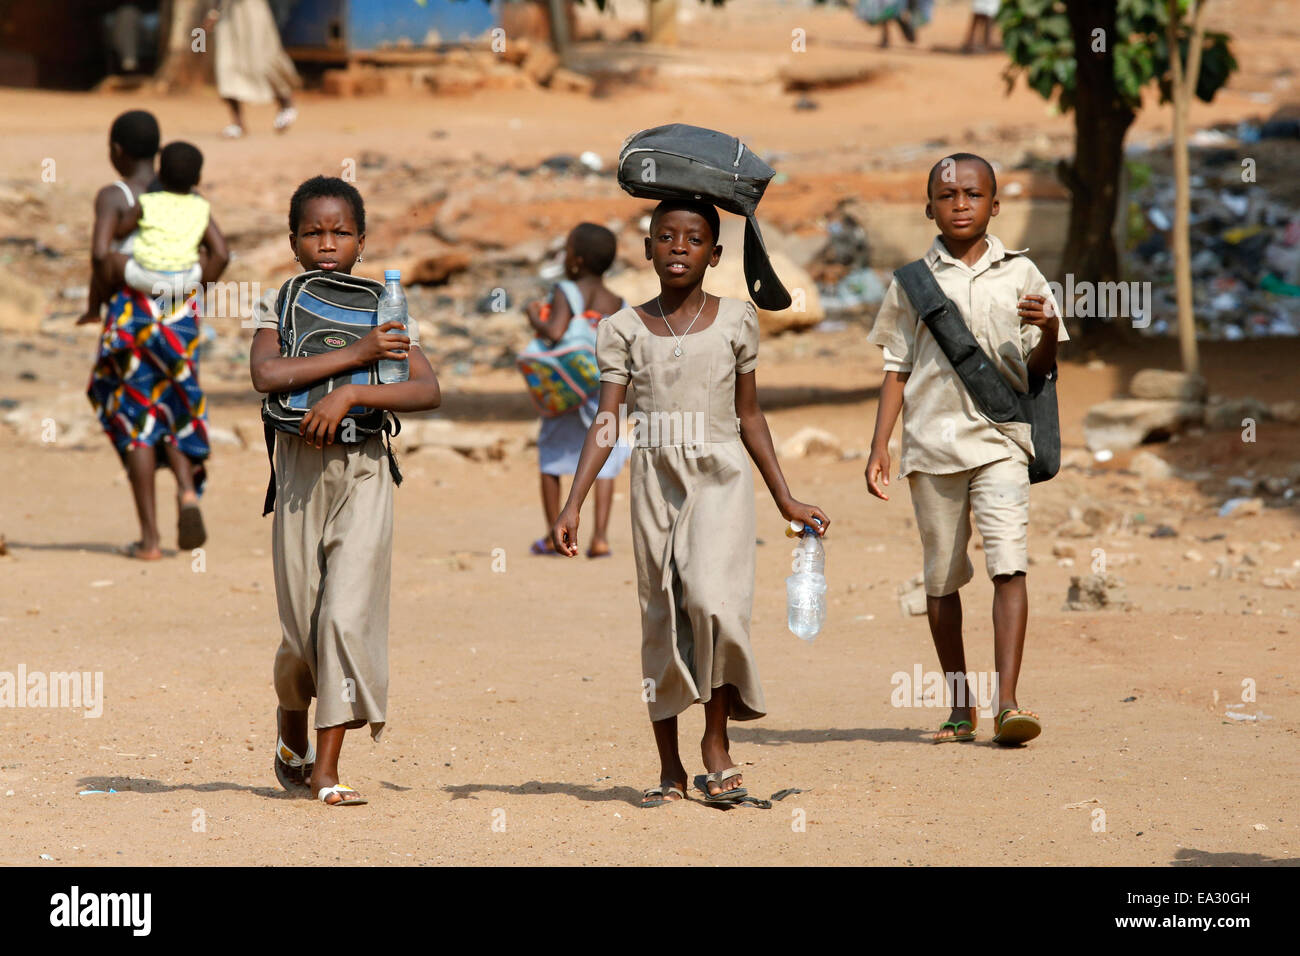 Pupils on their way to school, Lome, Togo, West Africa, Africa - Stock Image